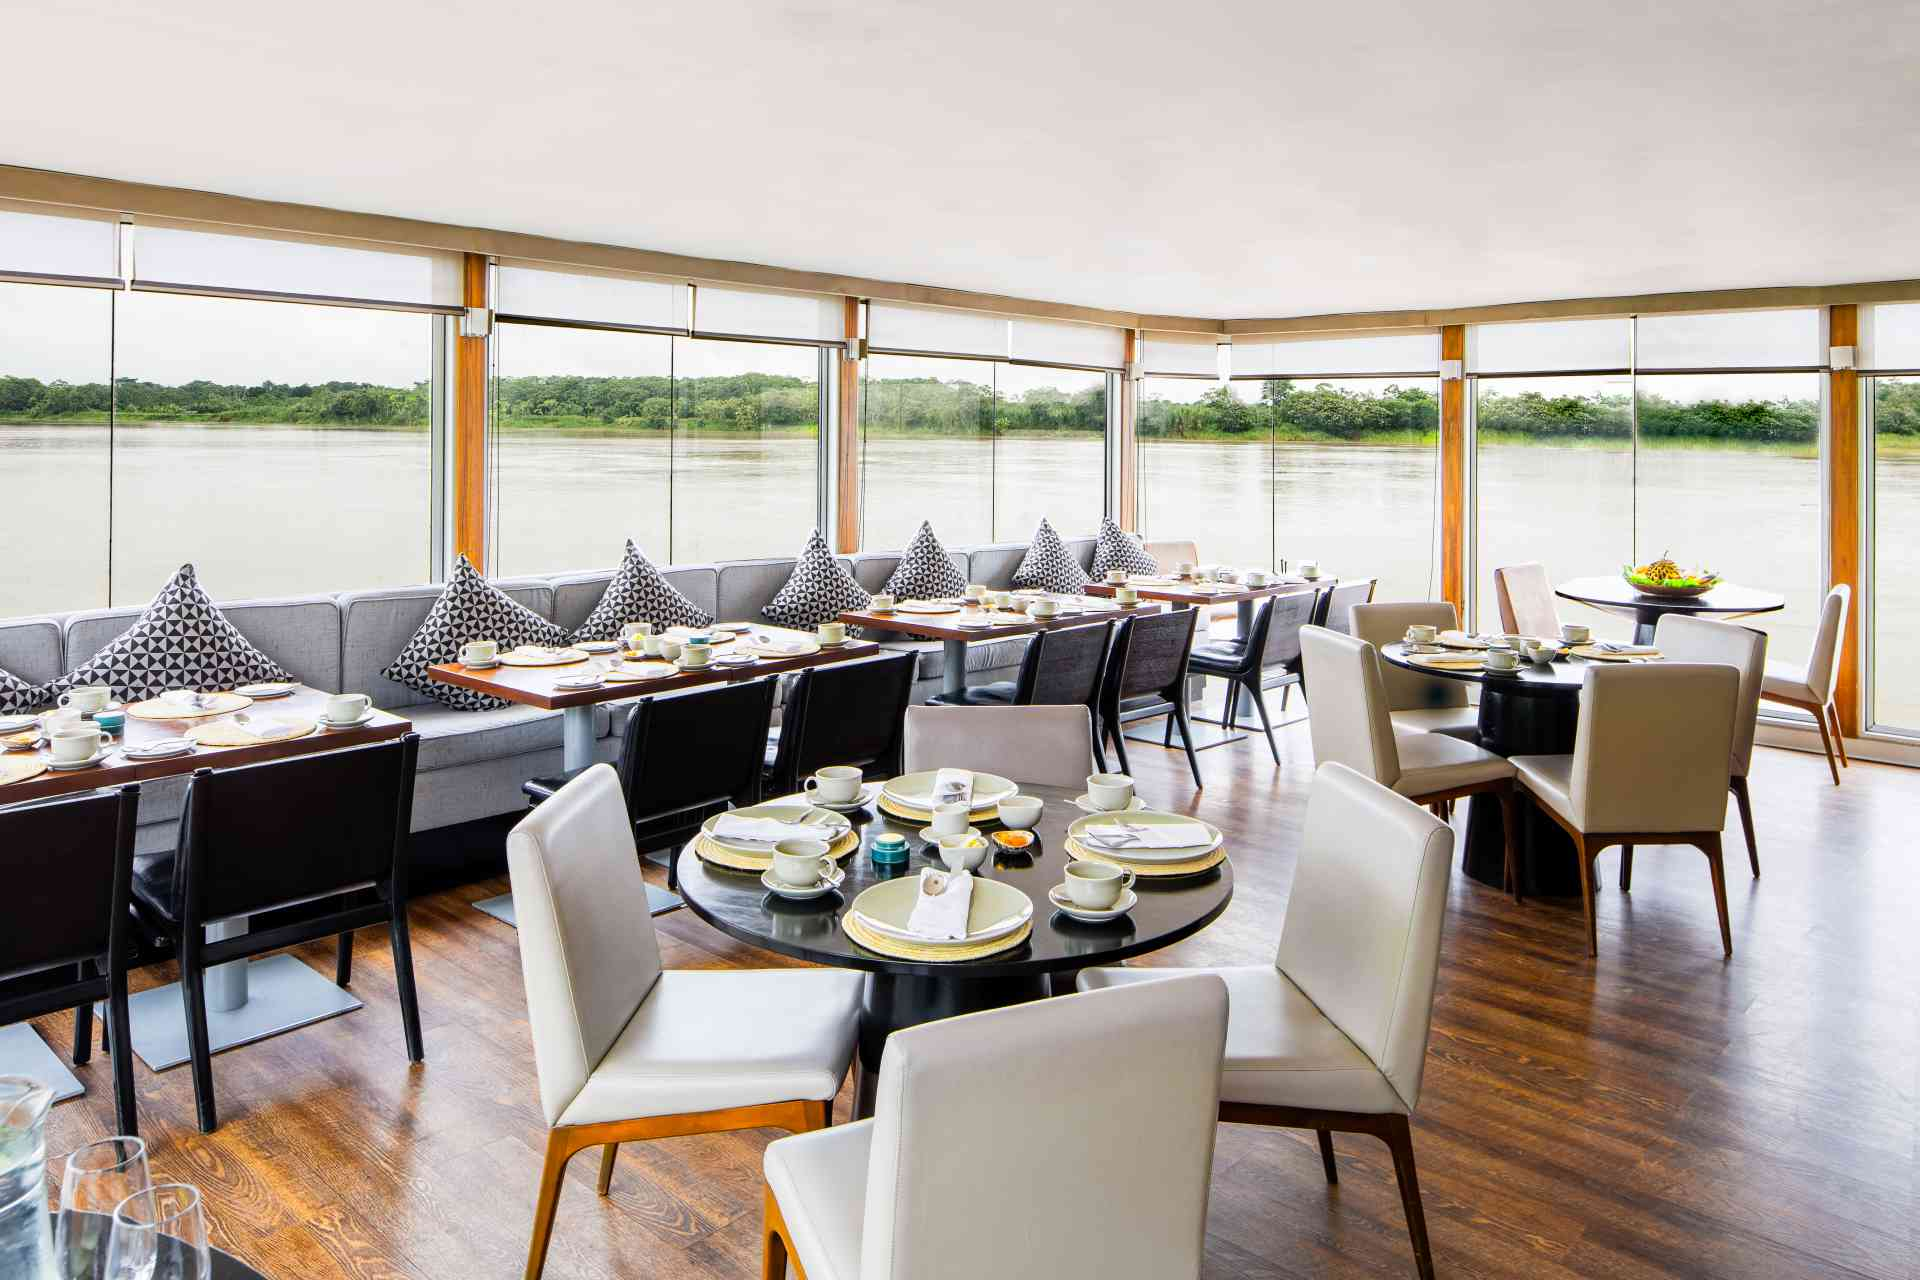 Aria Amazon dining room, Peru by Aqua Expeditions